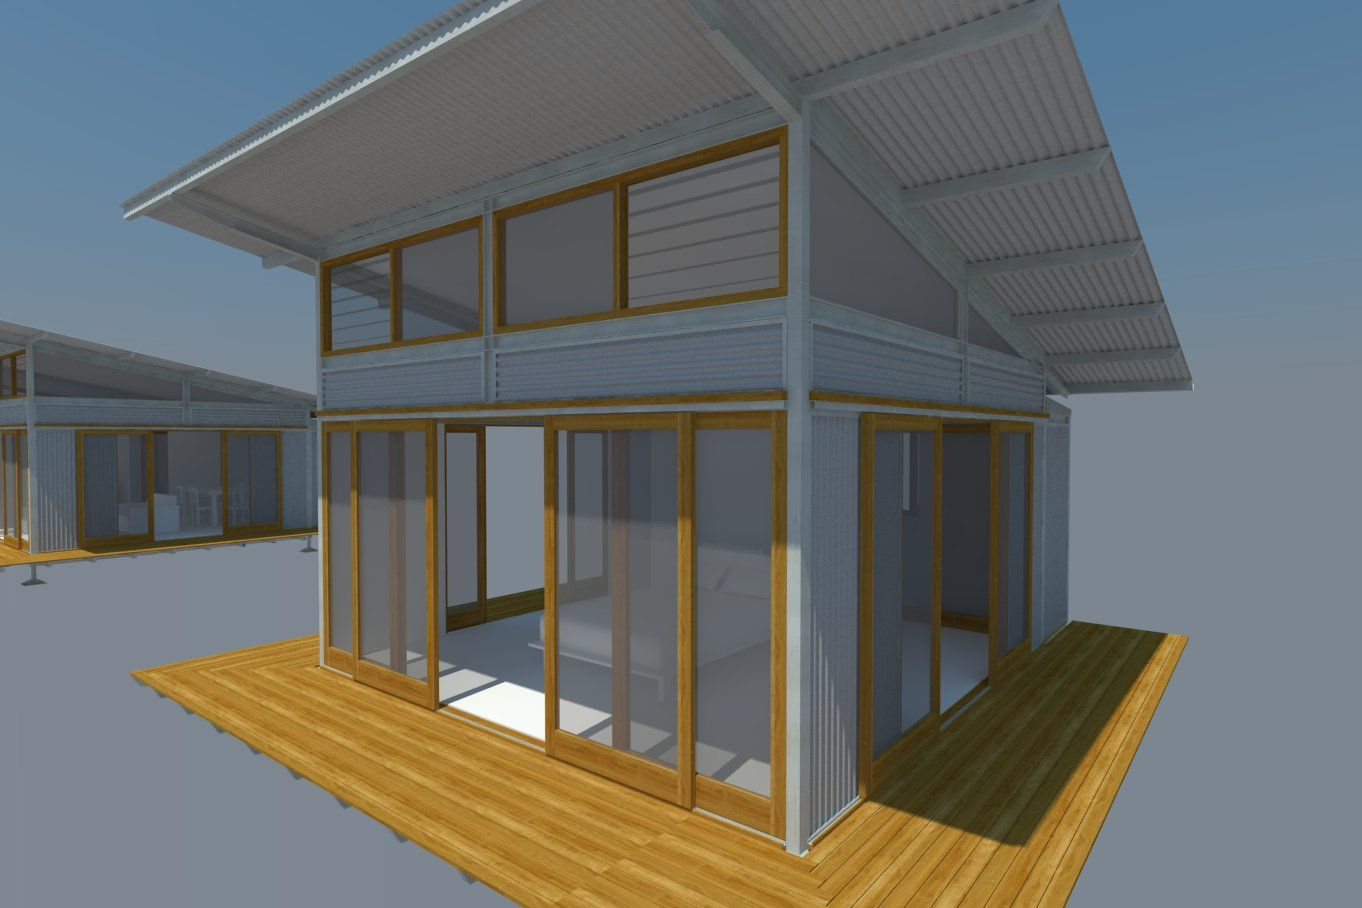 Mono Pitch Roof Shed Plans Modern House